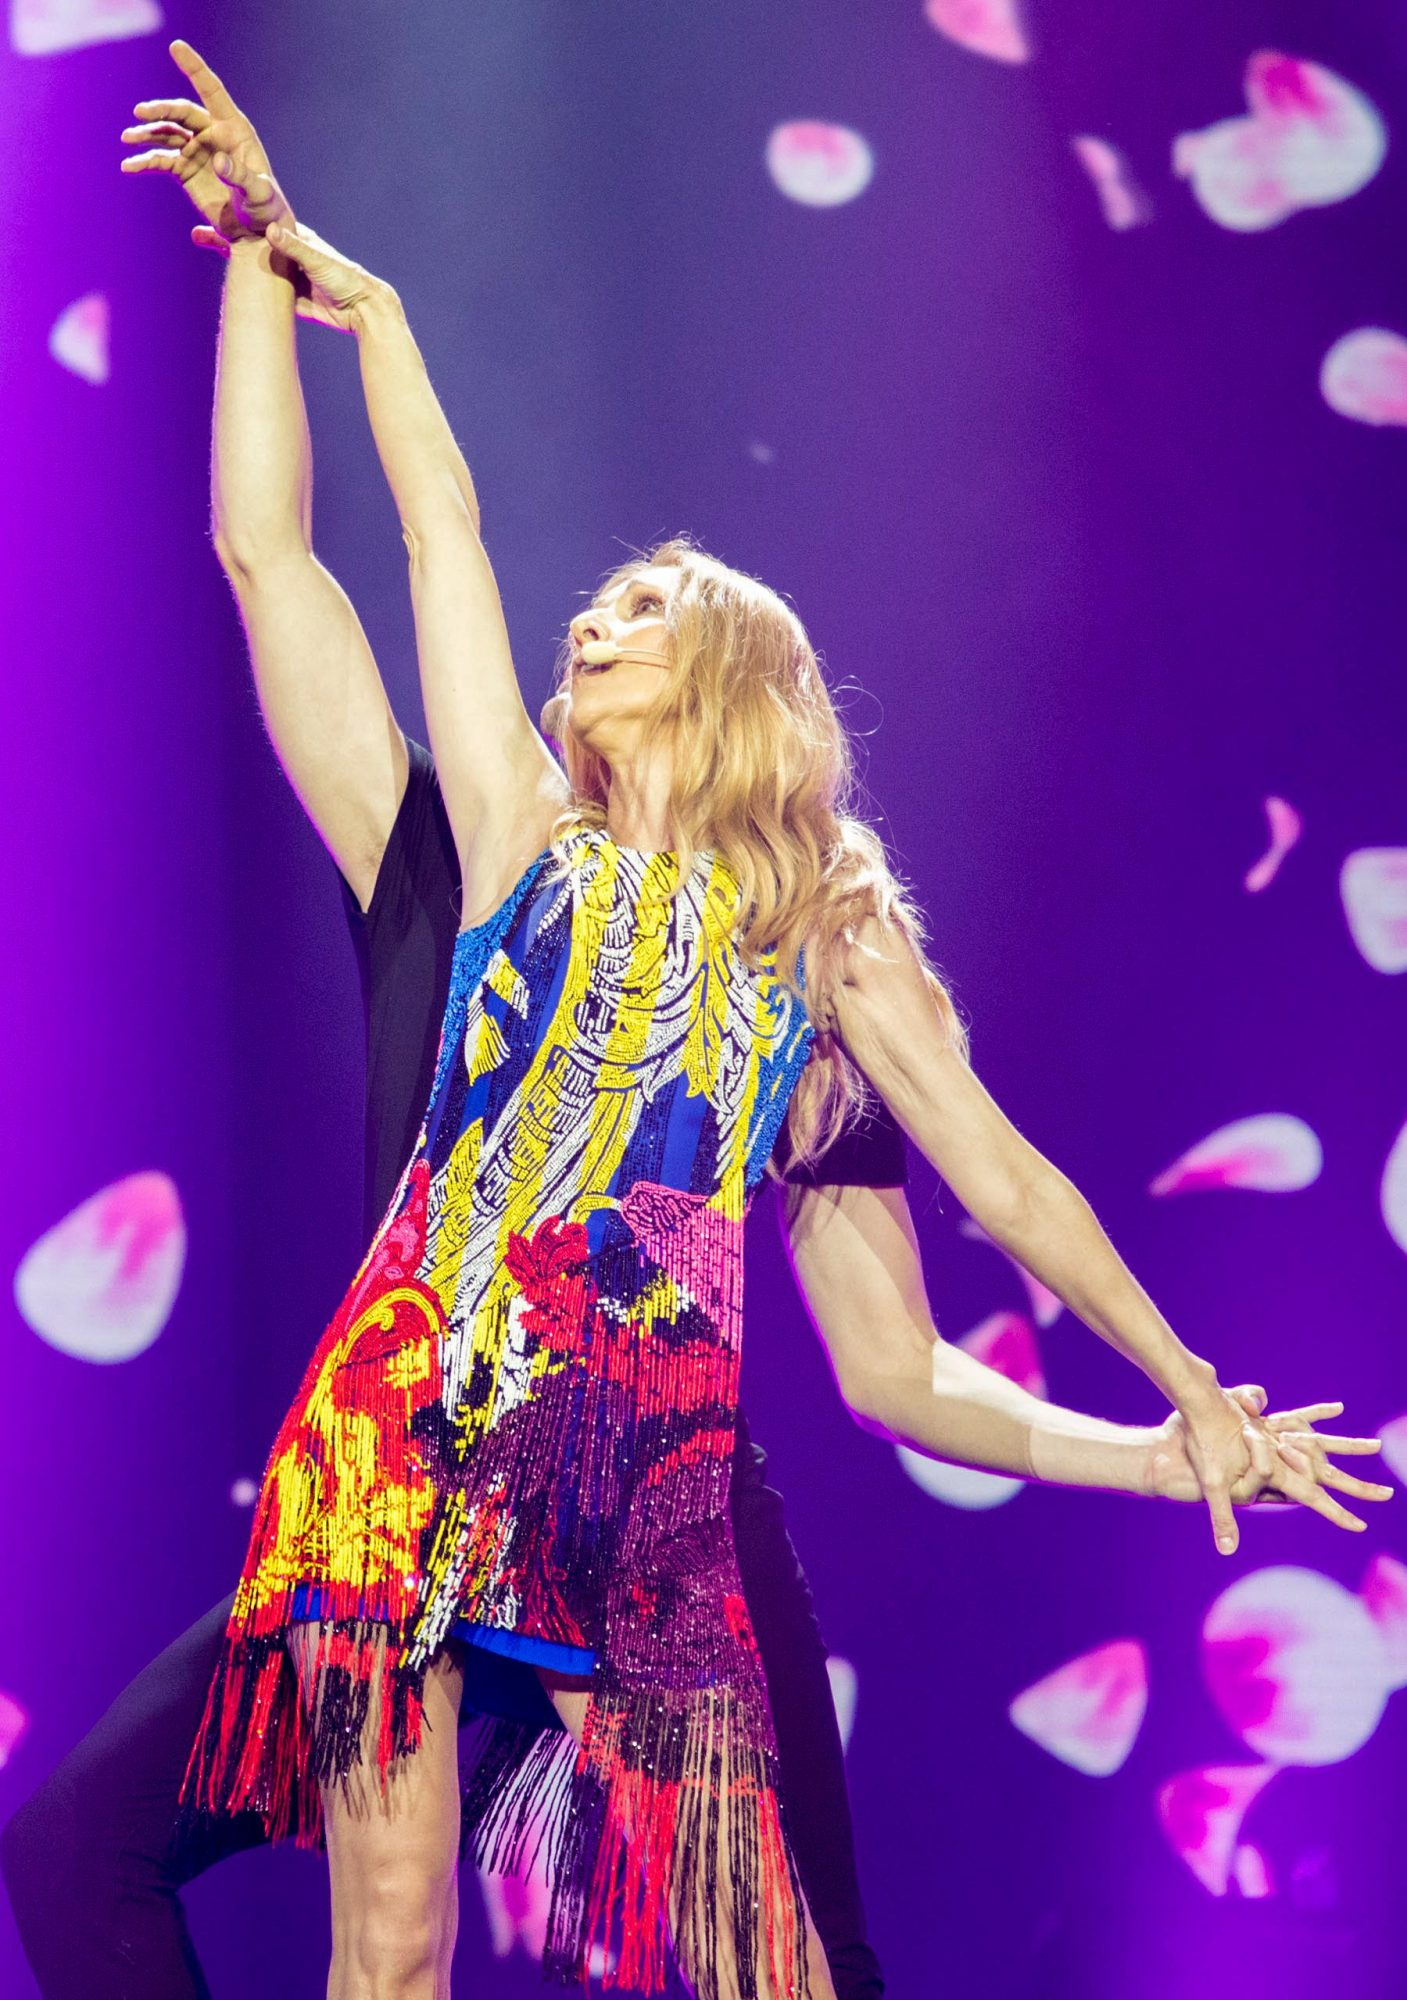 MACAU, CHINA - JUNE 29: Singer Celine Dion performs on the stage in concert at Cotai Strip Cotai Arena on June 29, 2018 in Macau, China. (Photo by VCG)